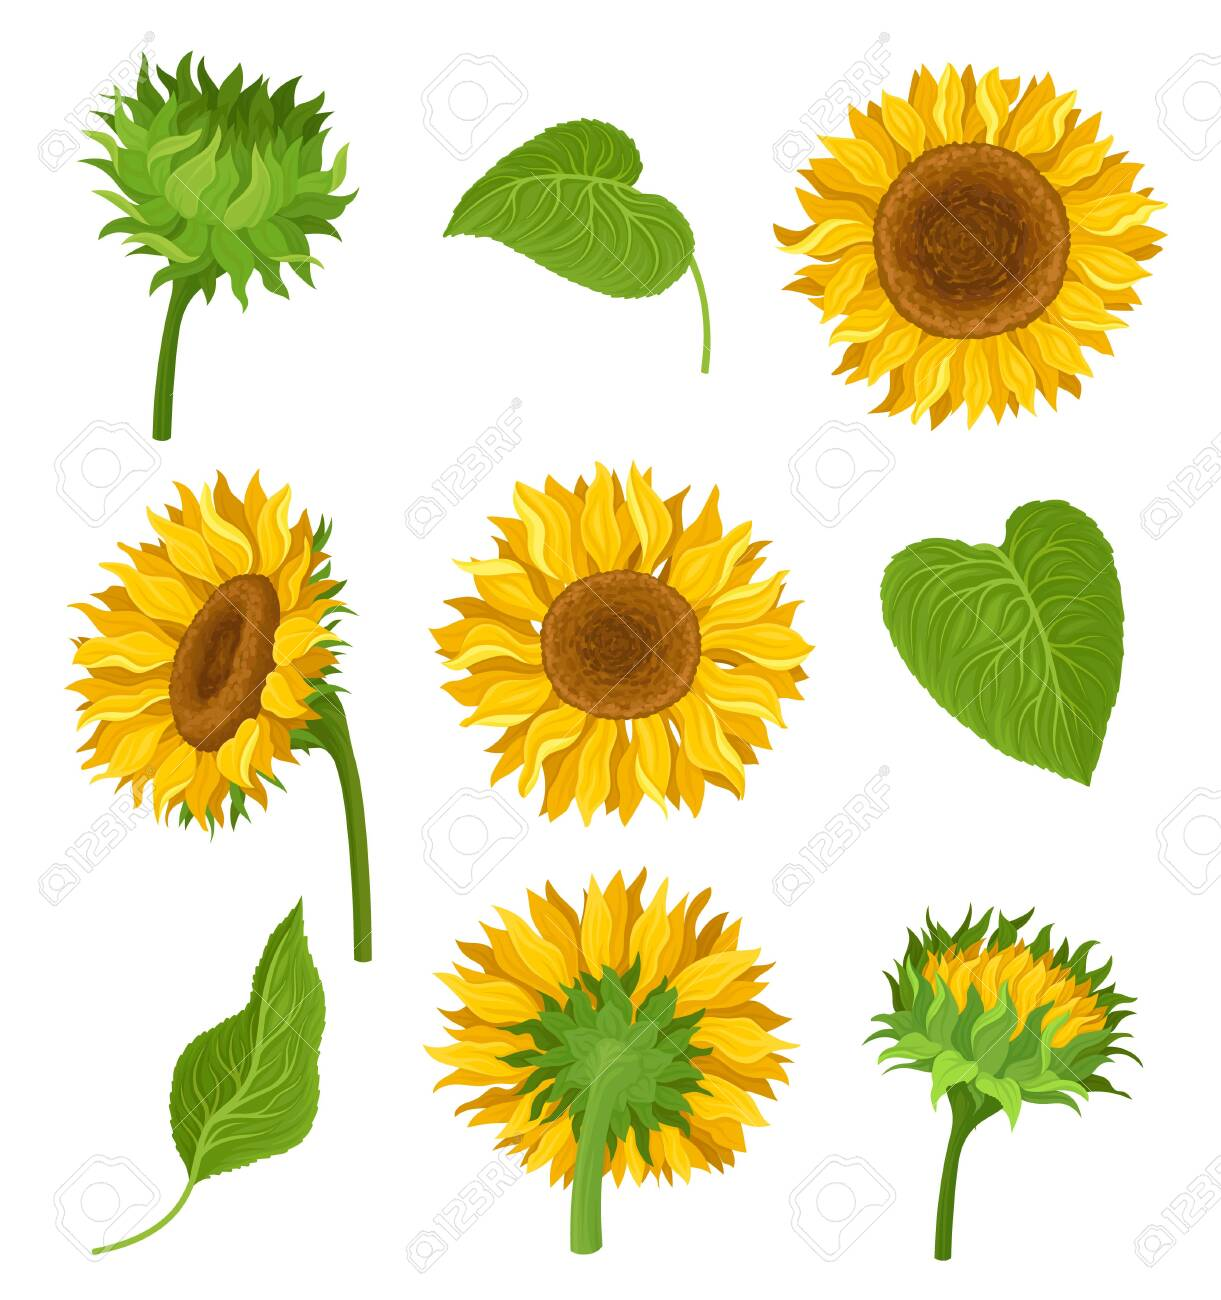 Set of illustration with sunflowers, their elements and different details. Yellow flowers, green leaves and stems, kinds of decoration with many compositions. Bright colors. cartoon illustration, isolated on white background. - 130675108